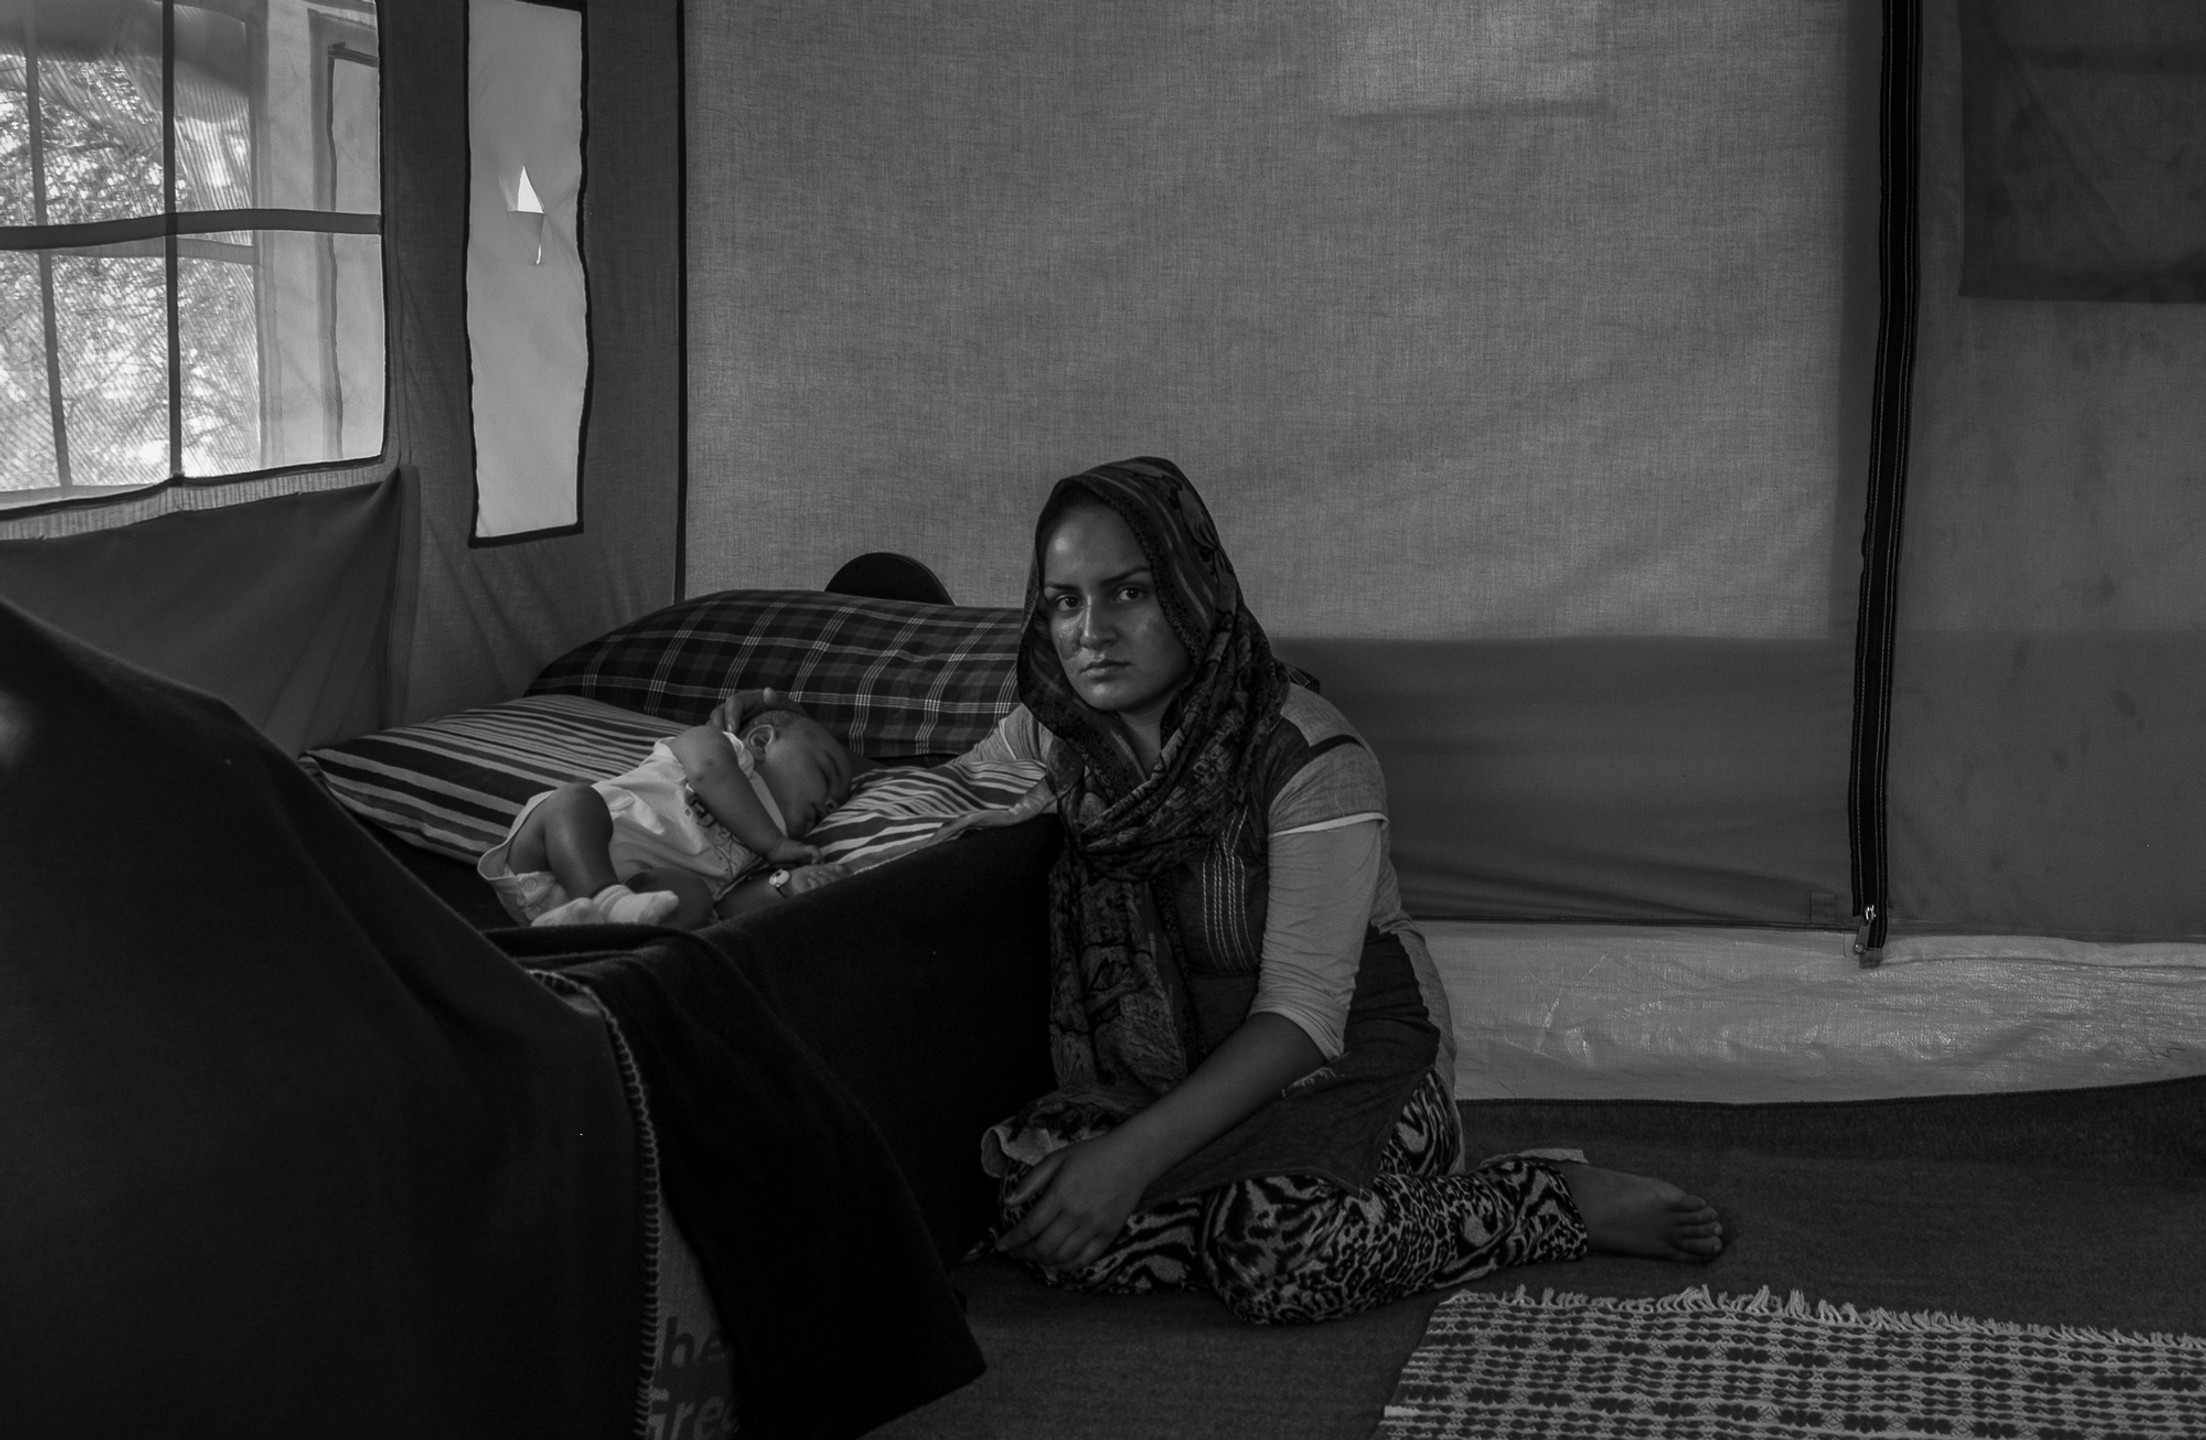 Munira Shahkar, 20, from Afghanistan, is currently staying in a camp in Oinofyta, a small town on the outskirts of Athens.